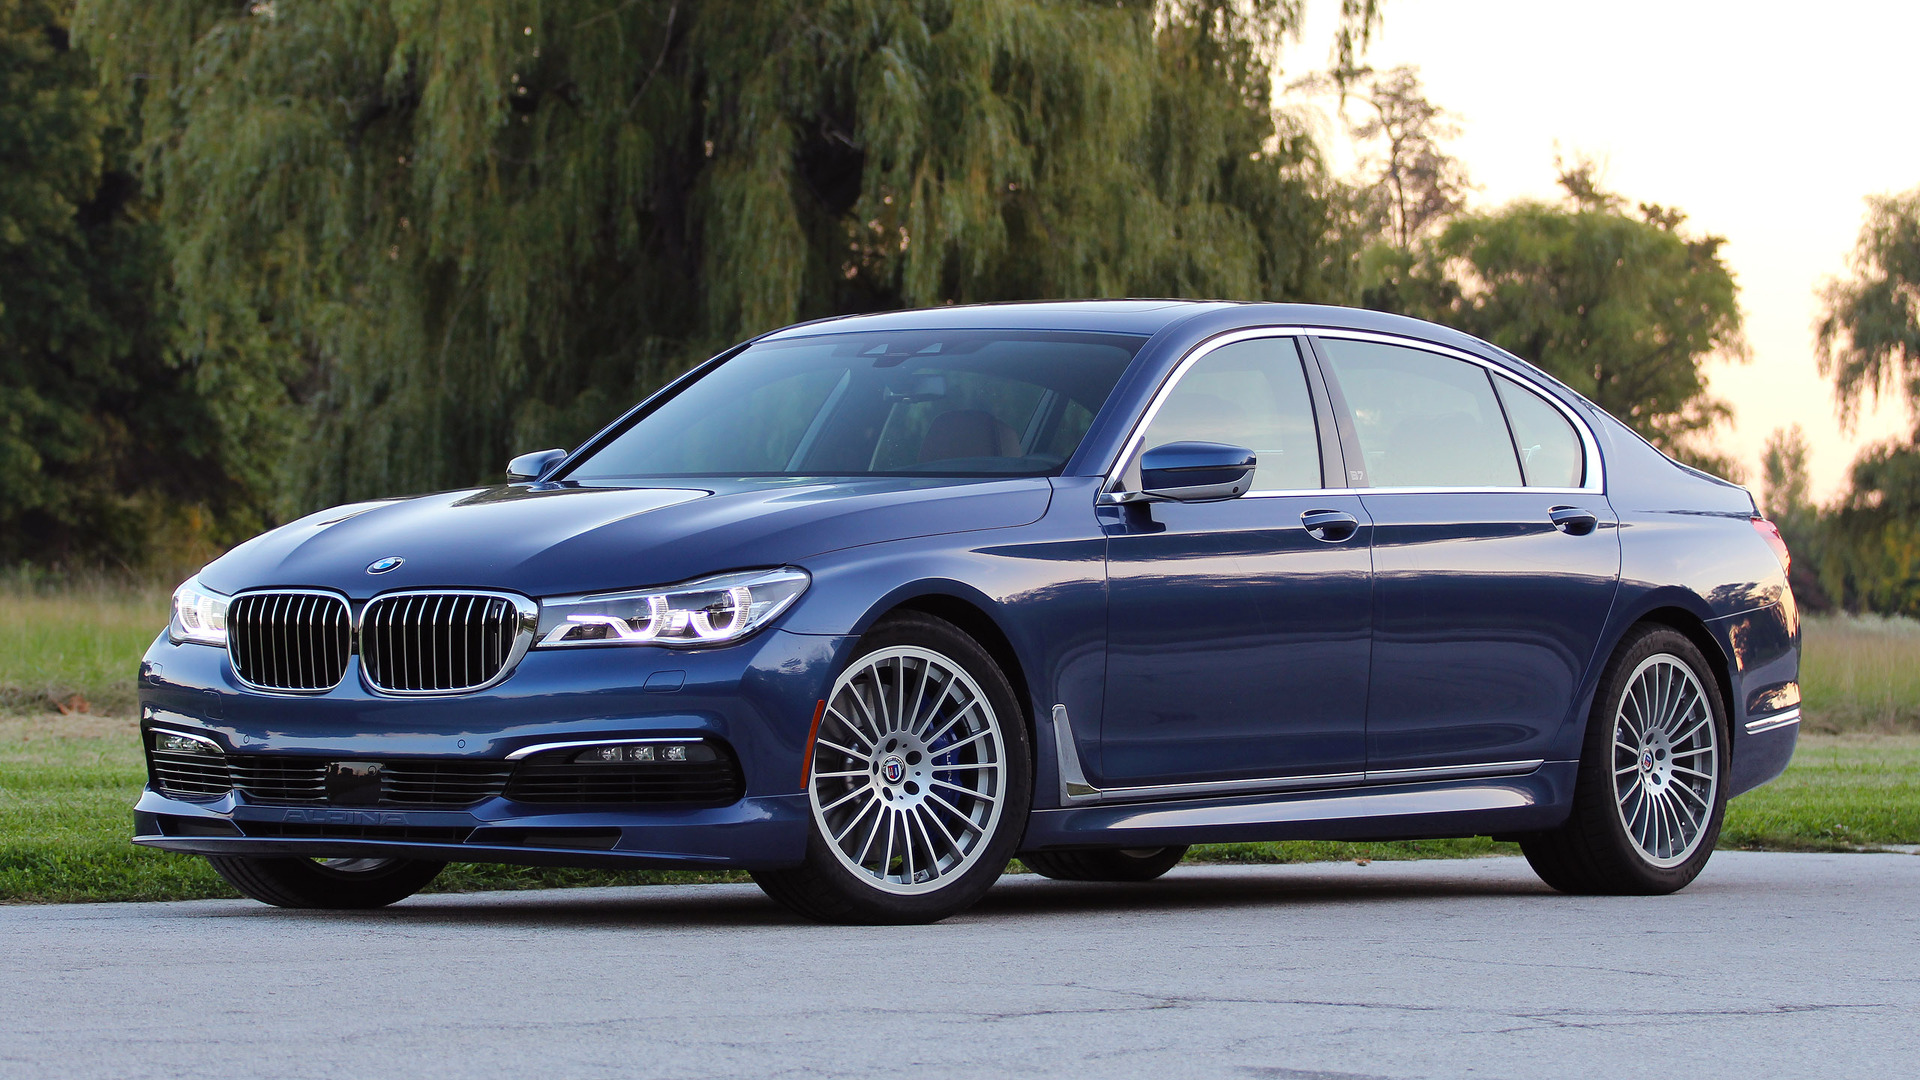 2017 BMW Alpina B7 Review: The magnificent Seven